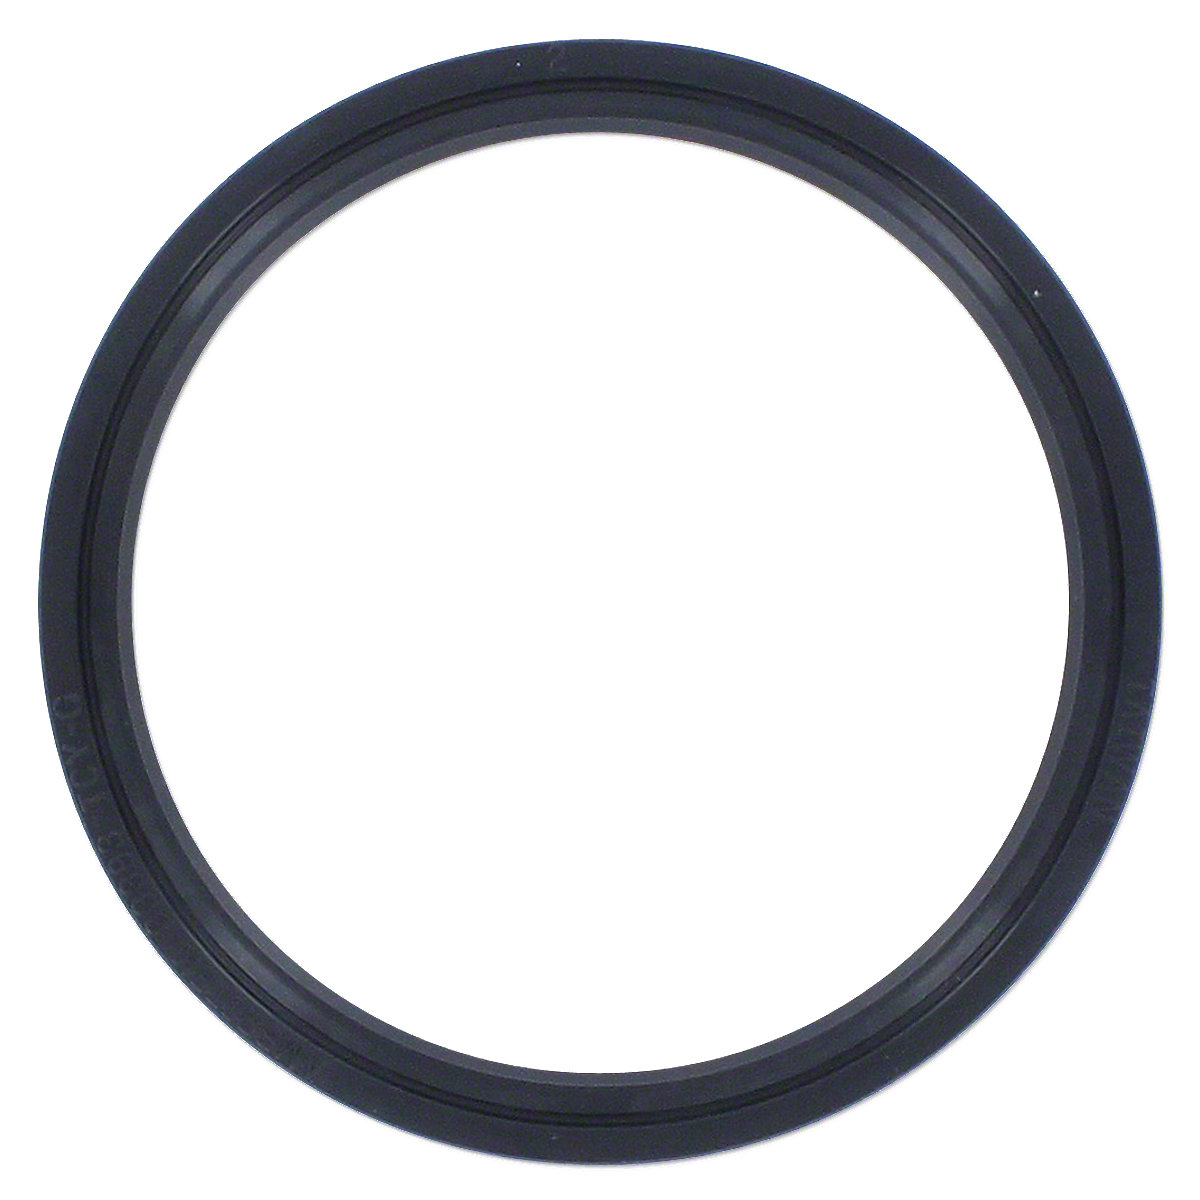 Rear Crank Shaft Seal For Allis Chalmers: D10, D12, D14, D15, I40, I400, I60 For Gas and LP Engines